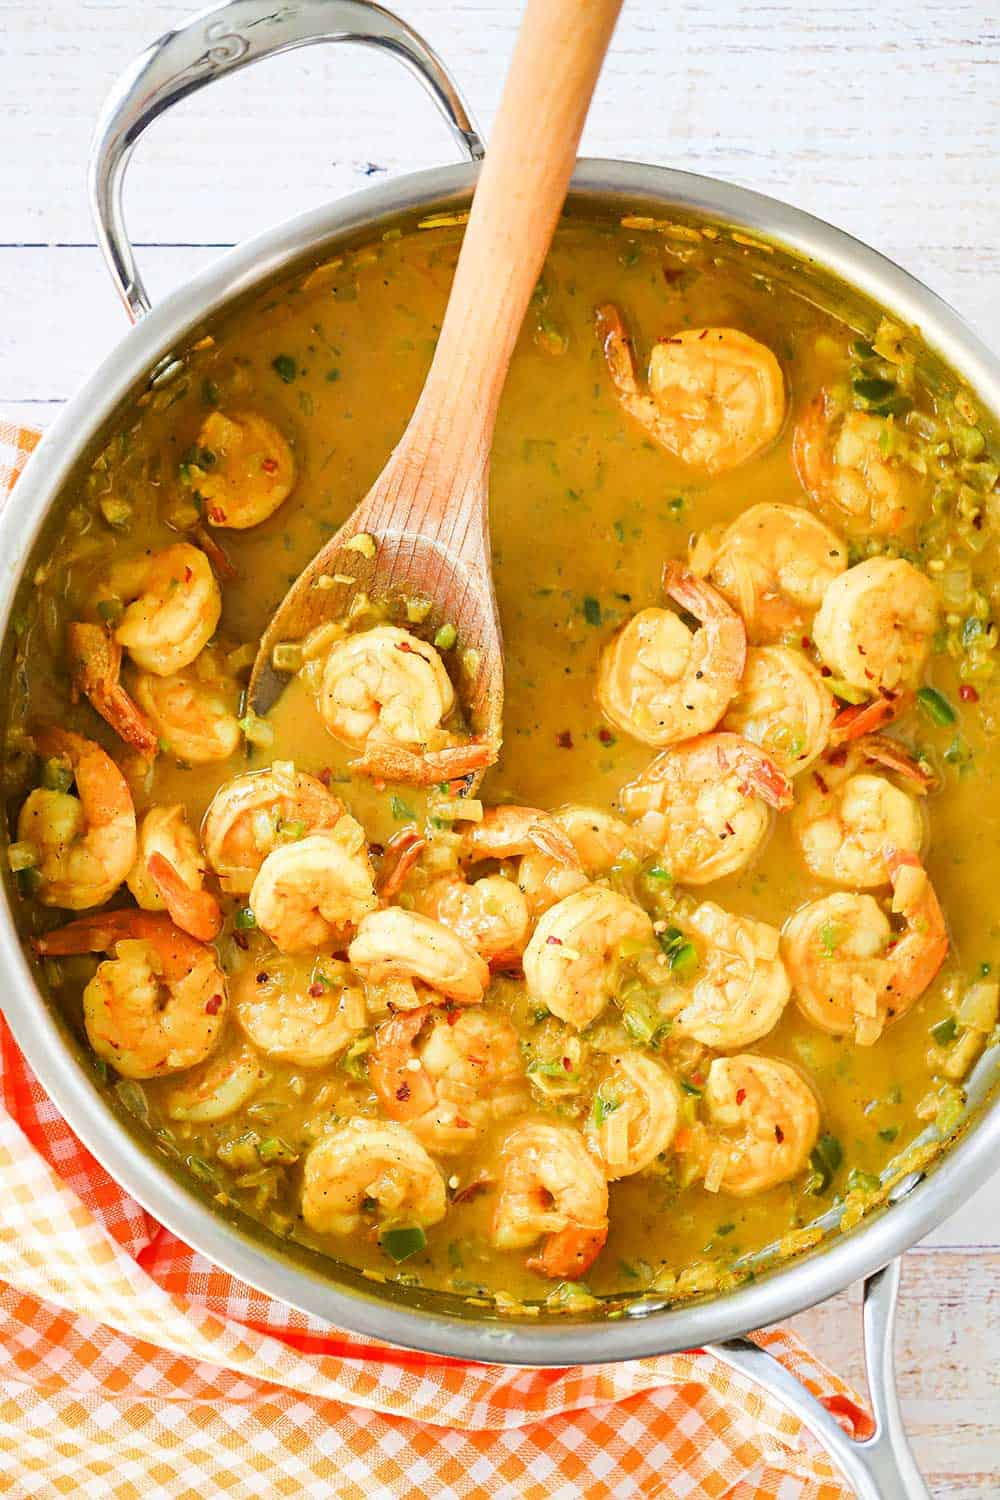 A large stainless steel skillet filled with shrimp curry in a sauce with a wooden spoon insert into the middle of it.